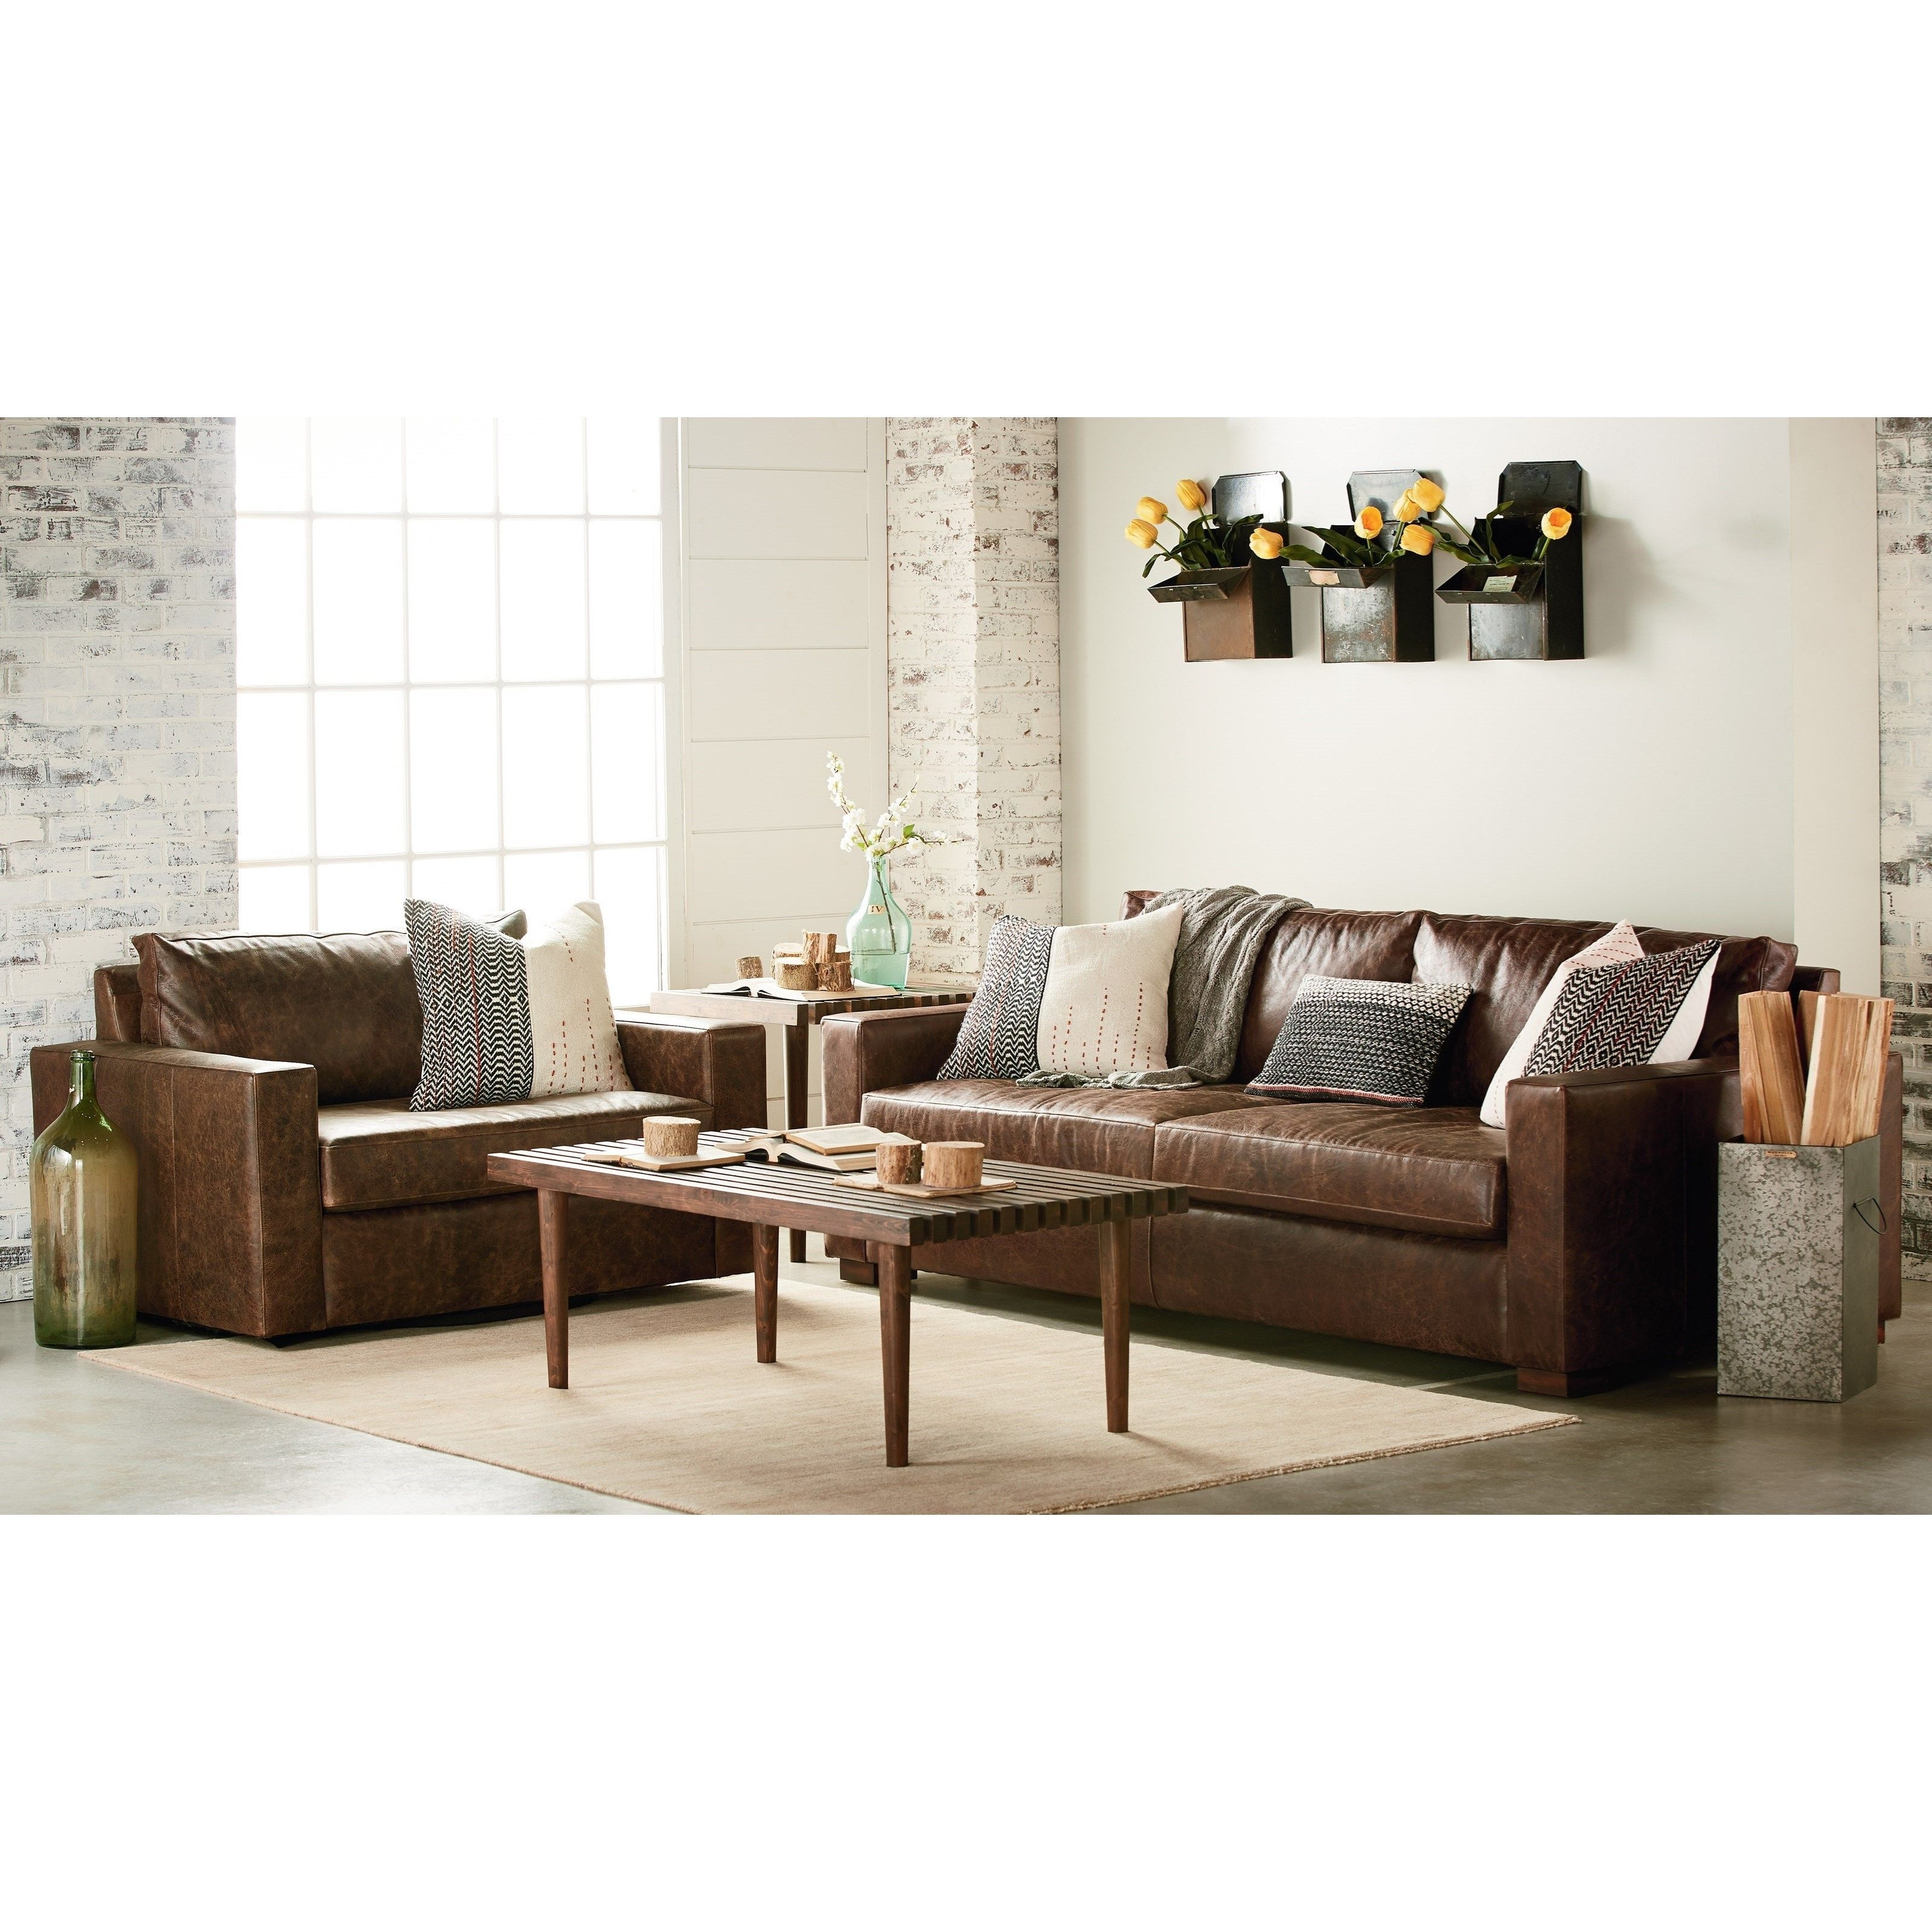 Magnolia Furniture Leather Sofa | Baci Living Room For Magnolia Home Homestead 4 Piece Sectionals By Joanna Gaines (View 21 of 30)